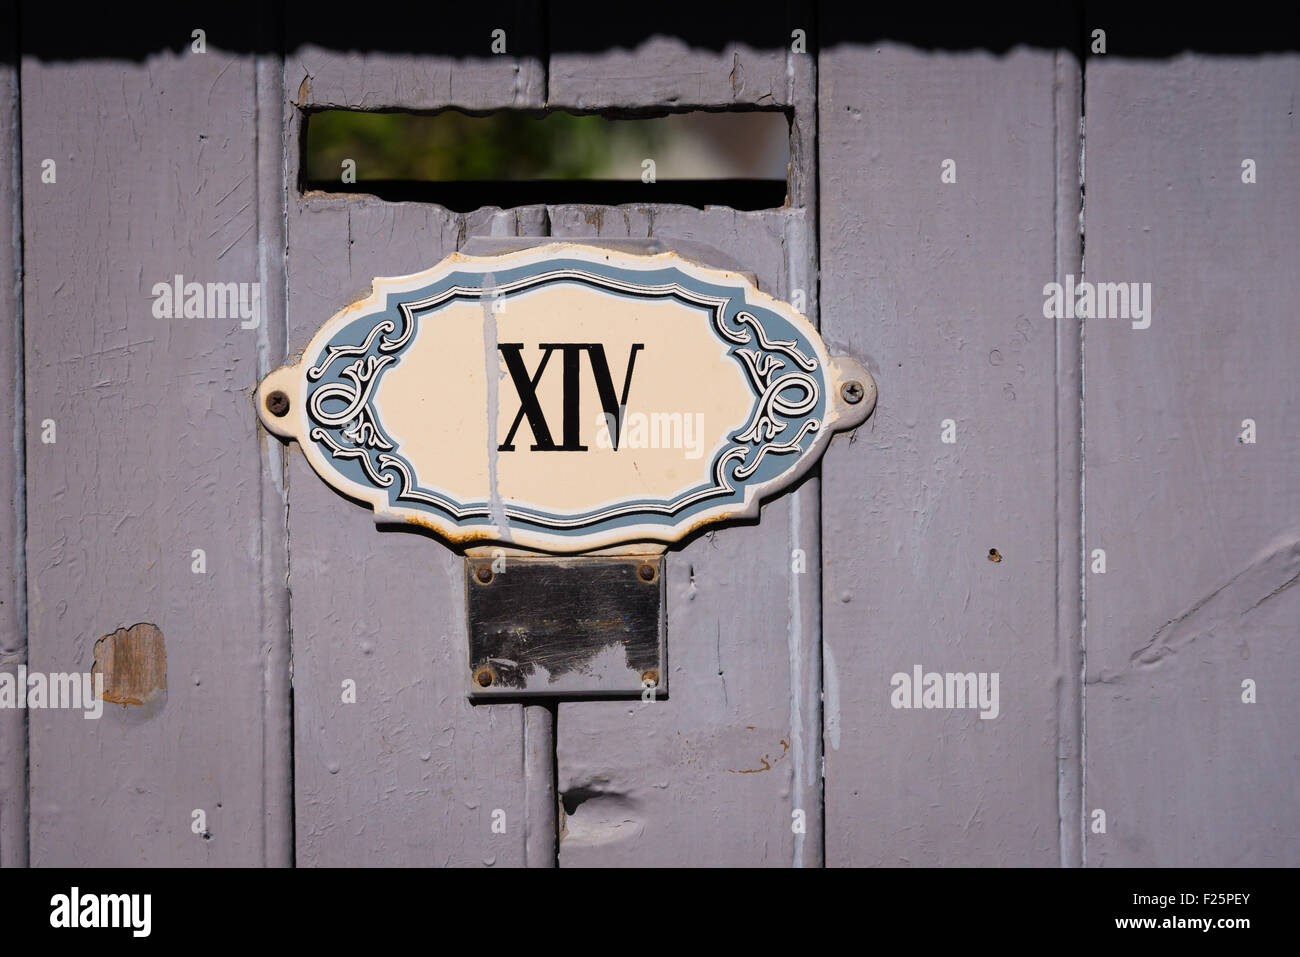 House number in Roman numerals  in the Haut Savoie village of Conflans, France - Stock Image